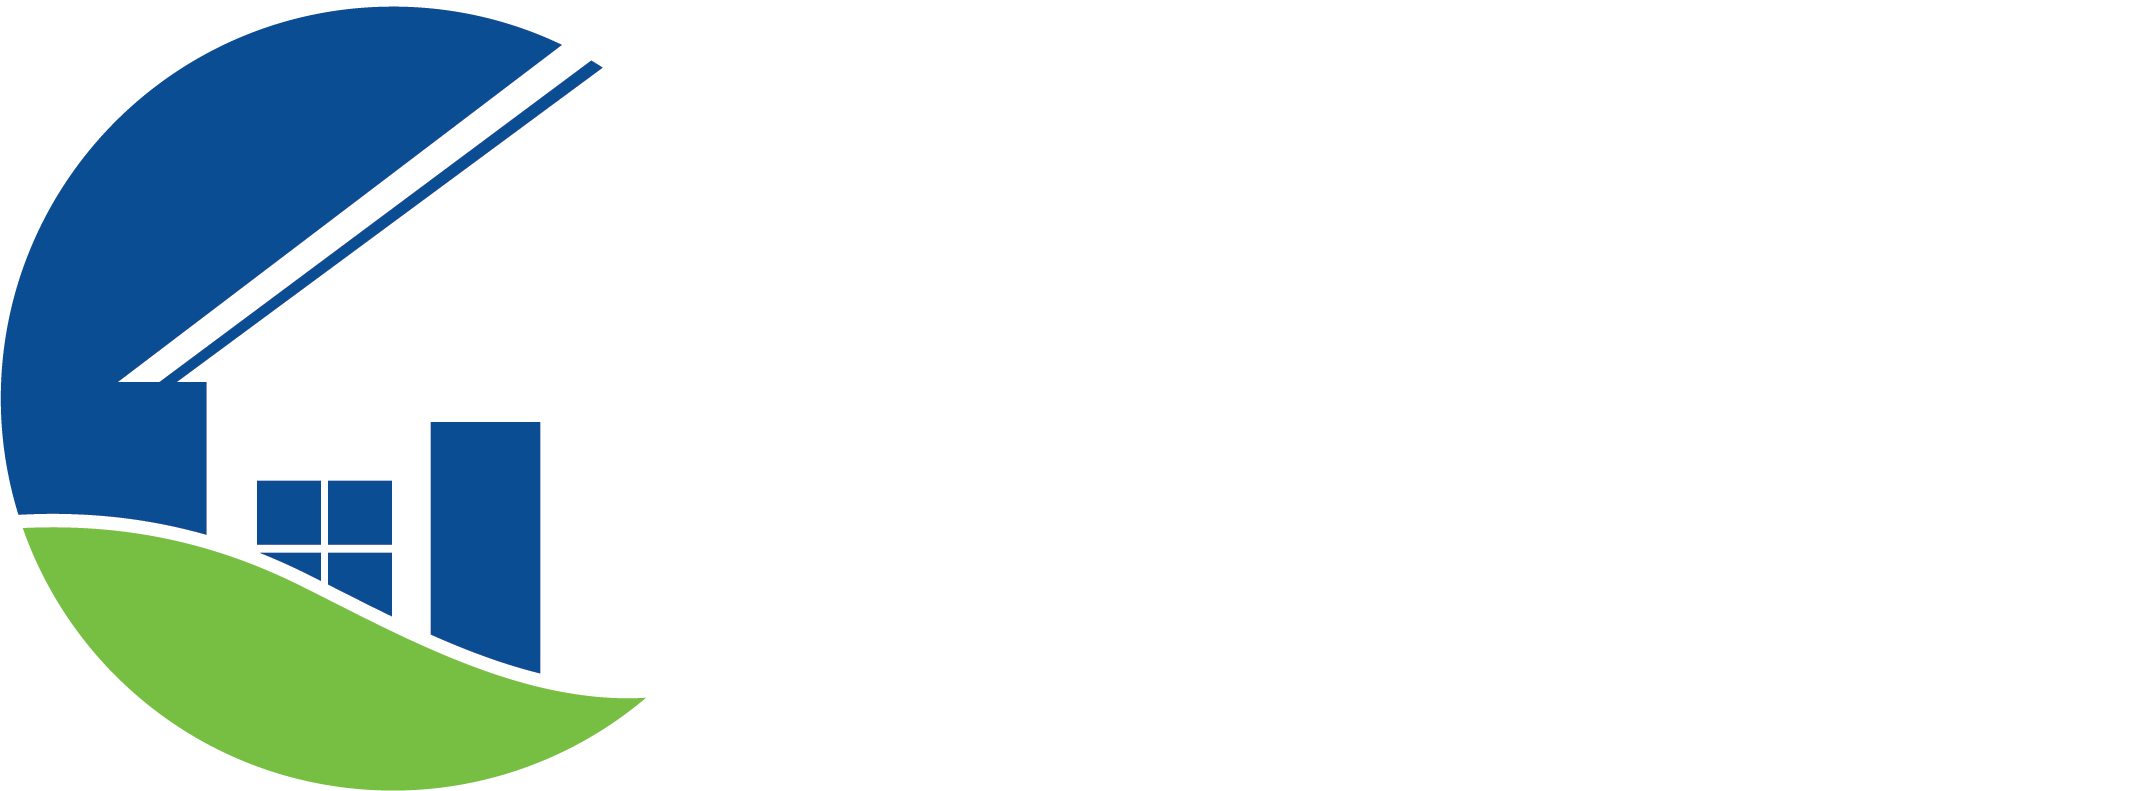 https://www.mortgageaccounting.com/